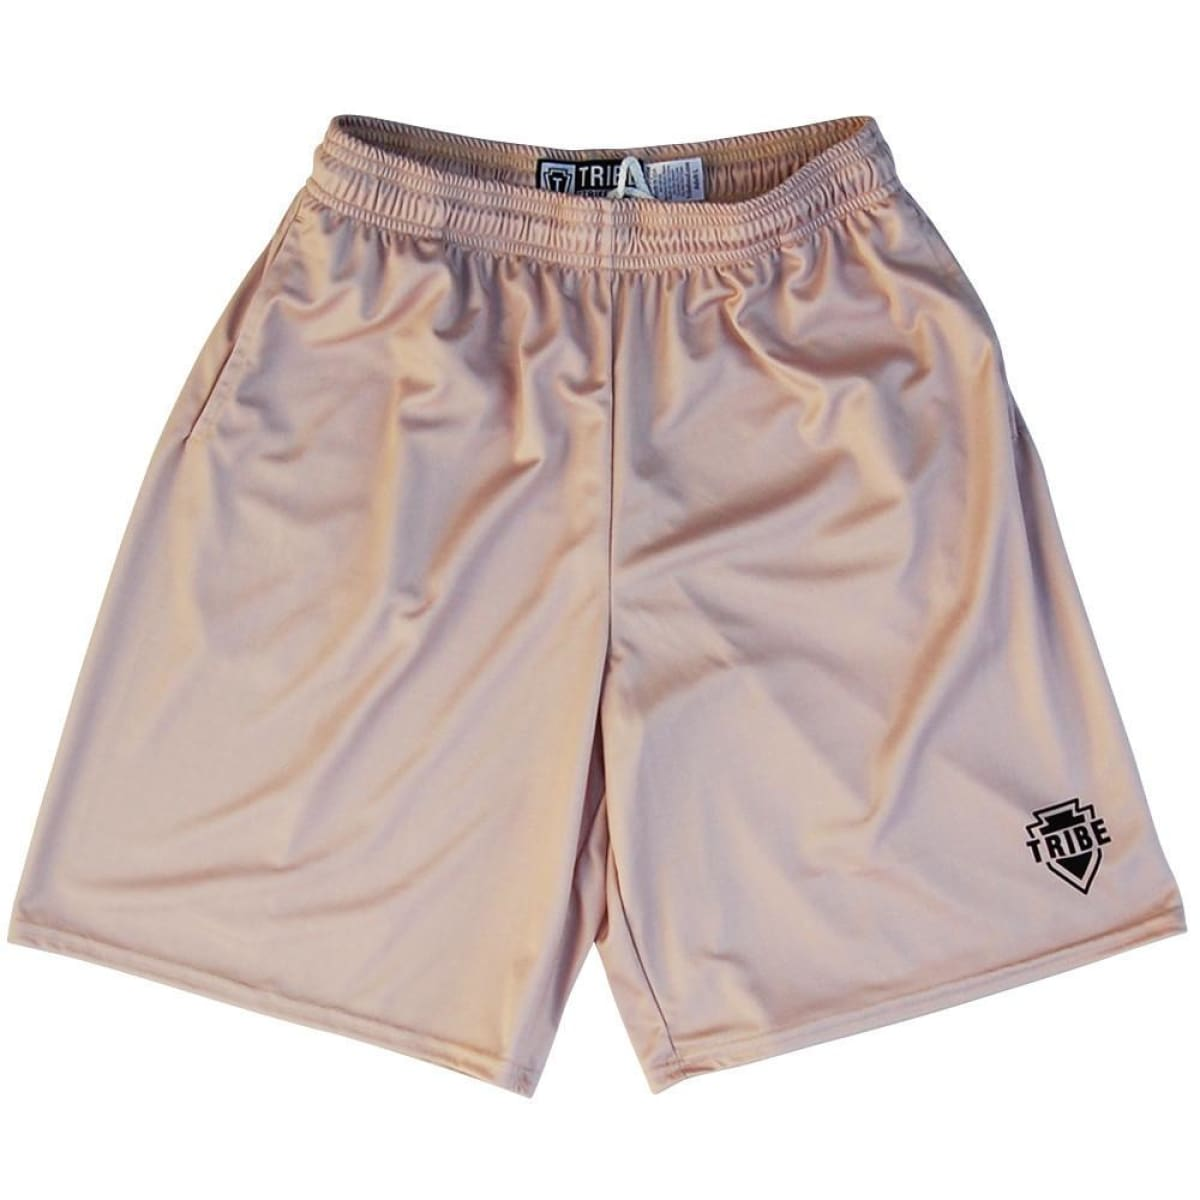 Tribe Vegas Gold Lacrosse Battle Shorts - Vegas Gold / Youth X-Small - Tribe Lacrosse Shorts